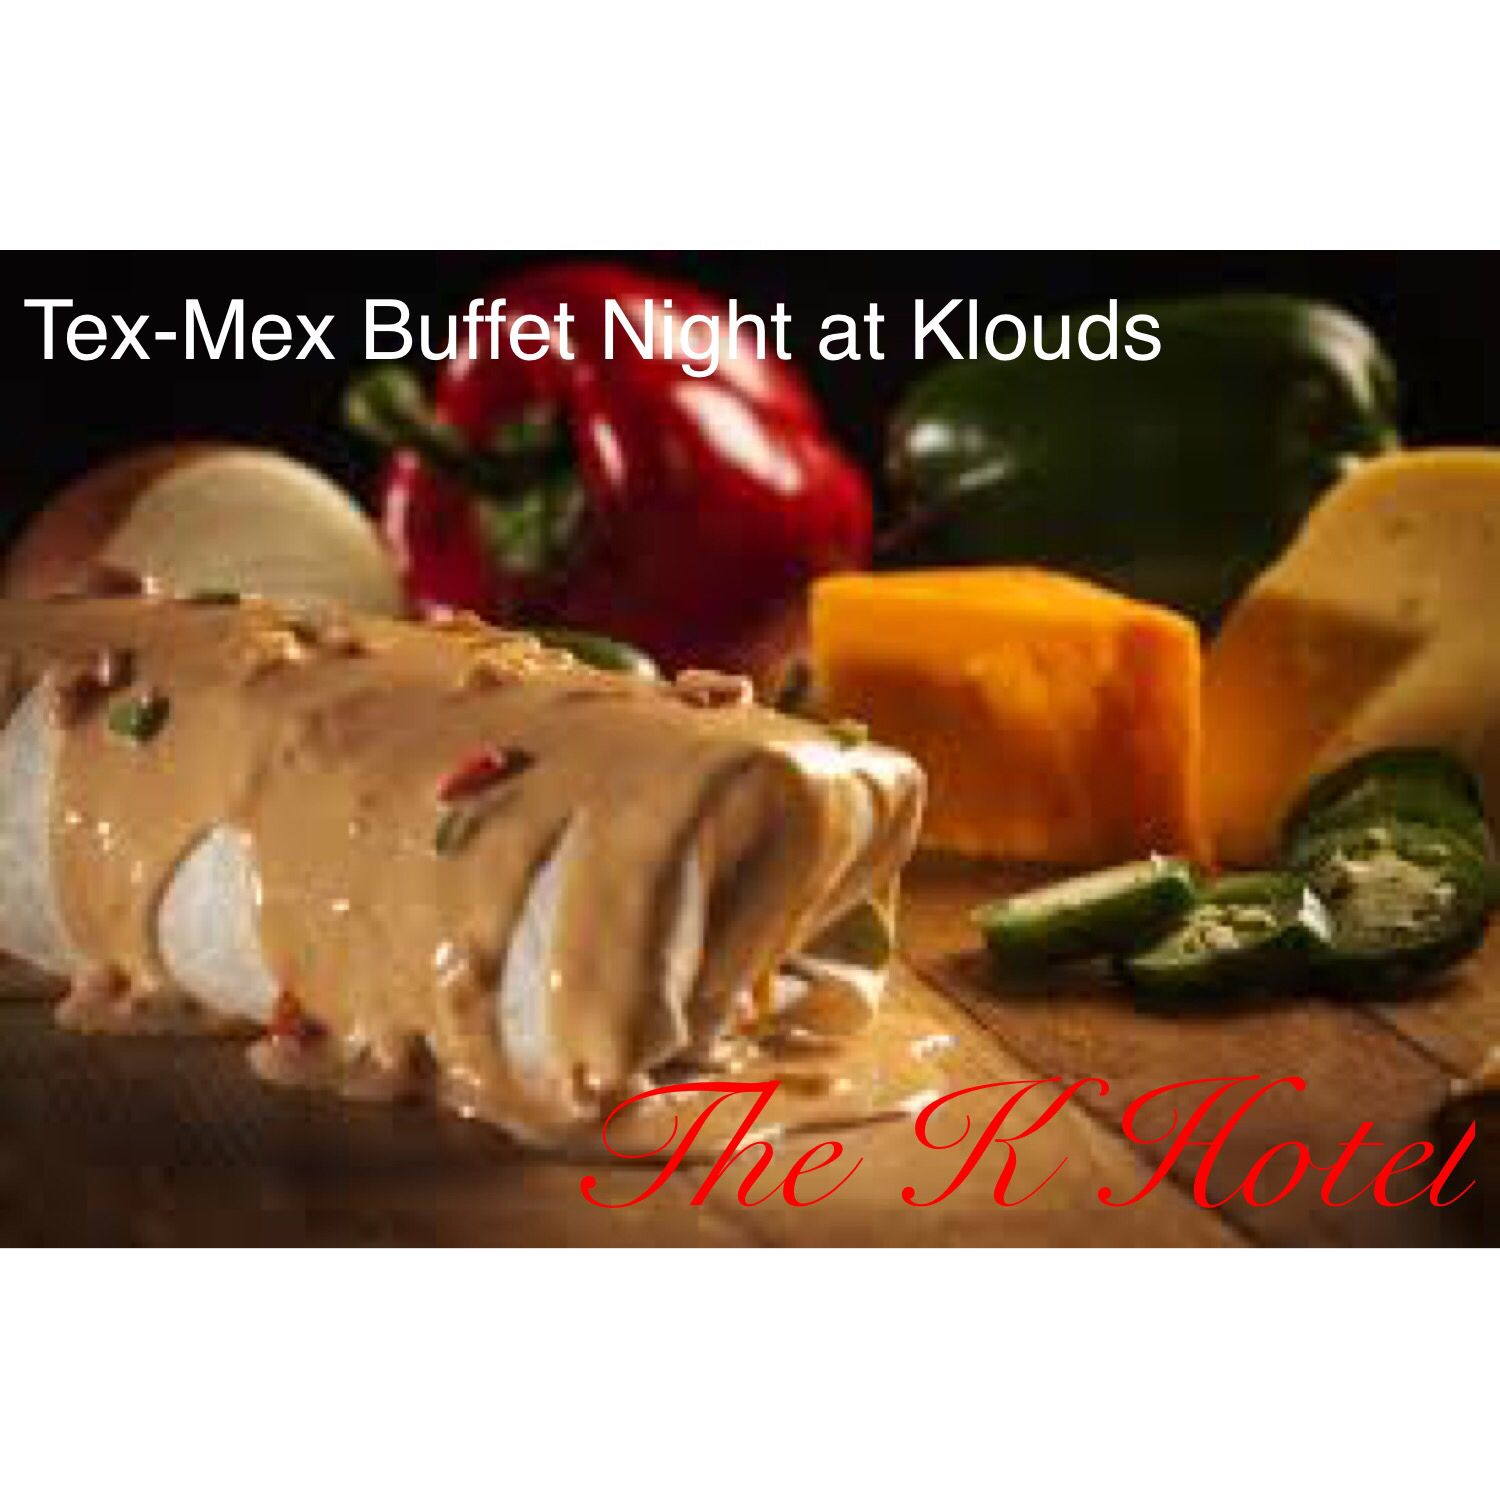 Using the finest ingredients and the most authentic recipes klouds using the finest ingredients and the most authentic recipes klouds offers a taste of american mexican cuisine sit back and enjoy a memorable meal amidst forumfinder Choice Image